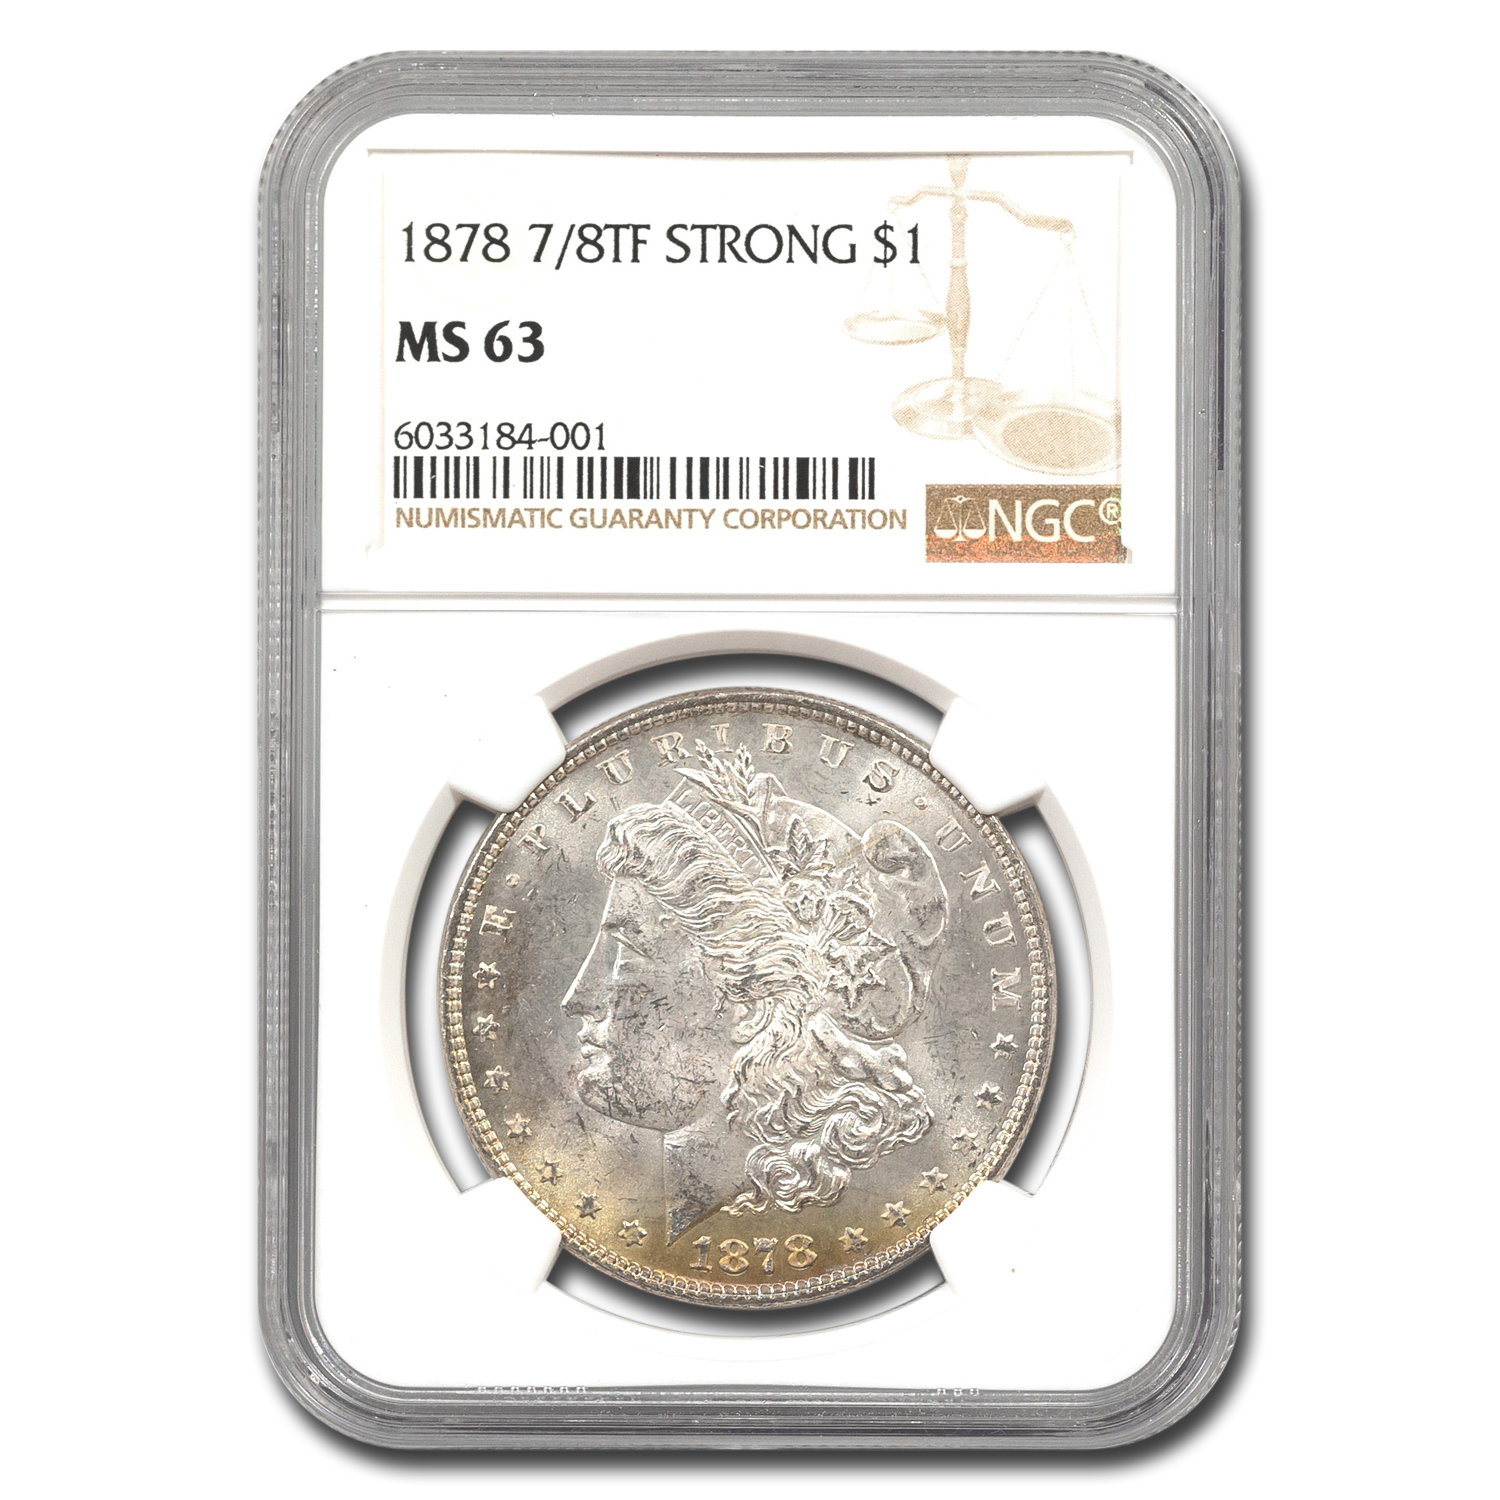 1878 Morgan Dollar 7/8 TF MS-63 NGC (Strong)